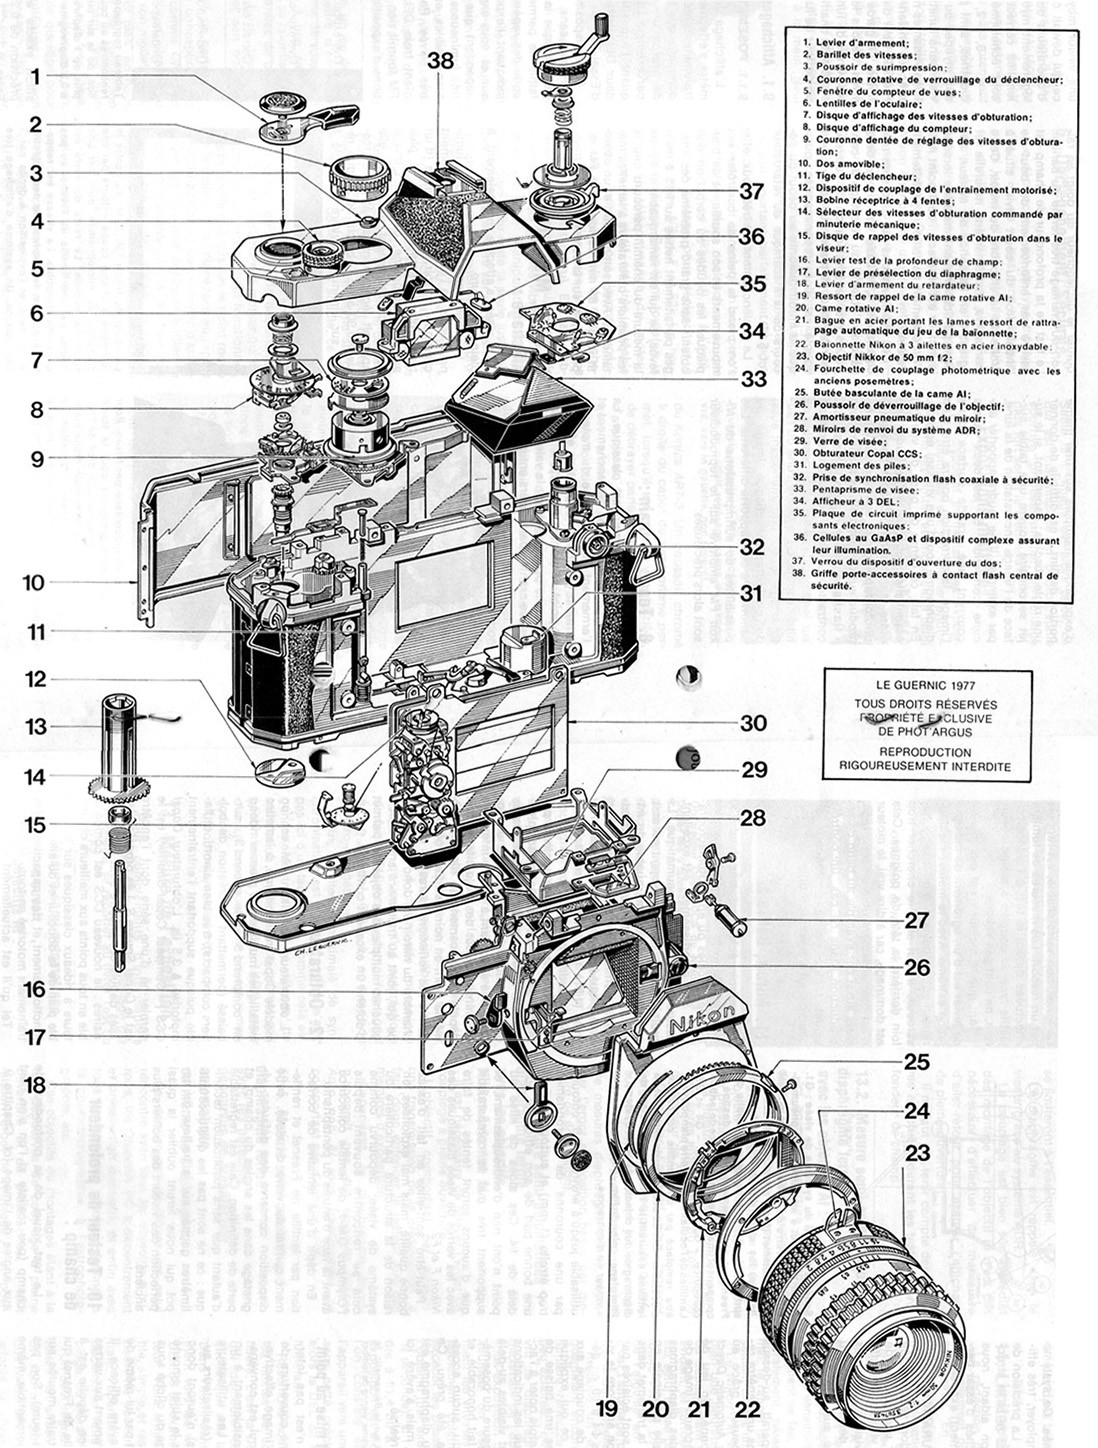 coyote skeleton diagram universal electric motor wiring these schematics offer an exploded view of old nikon slr